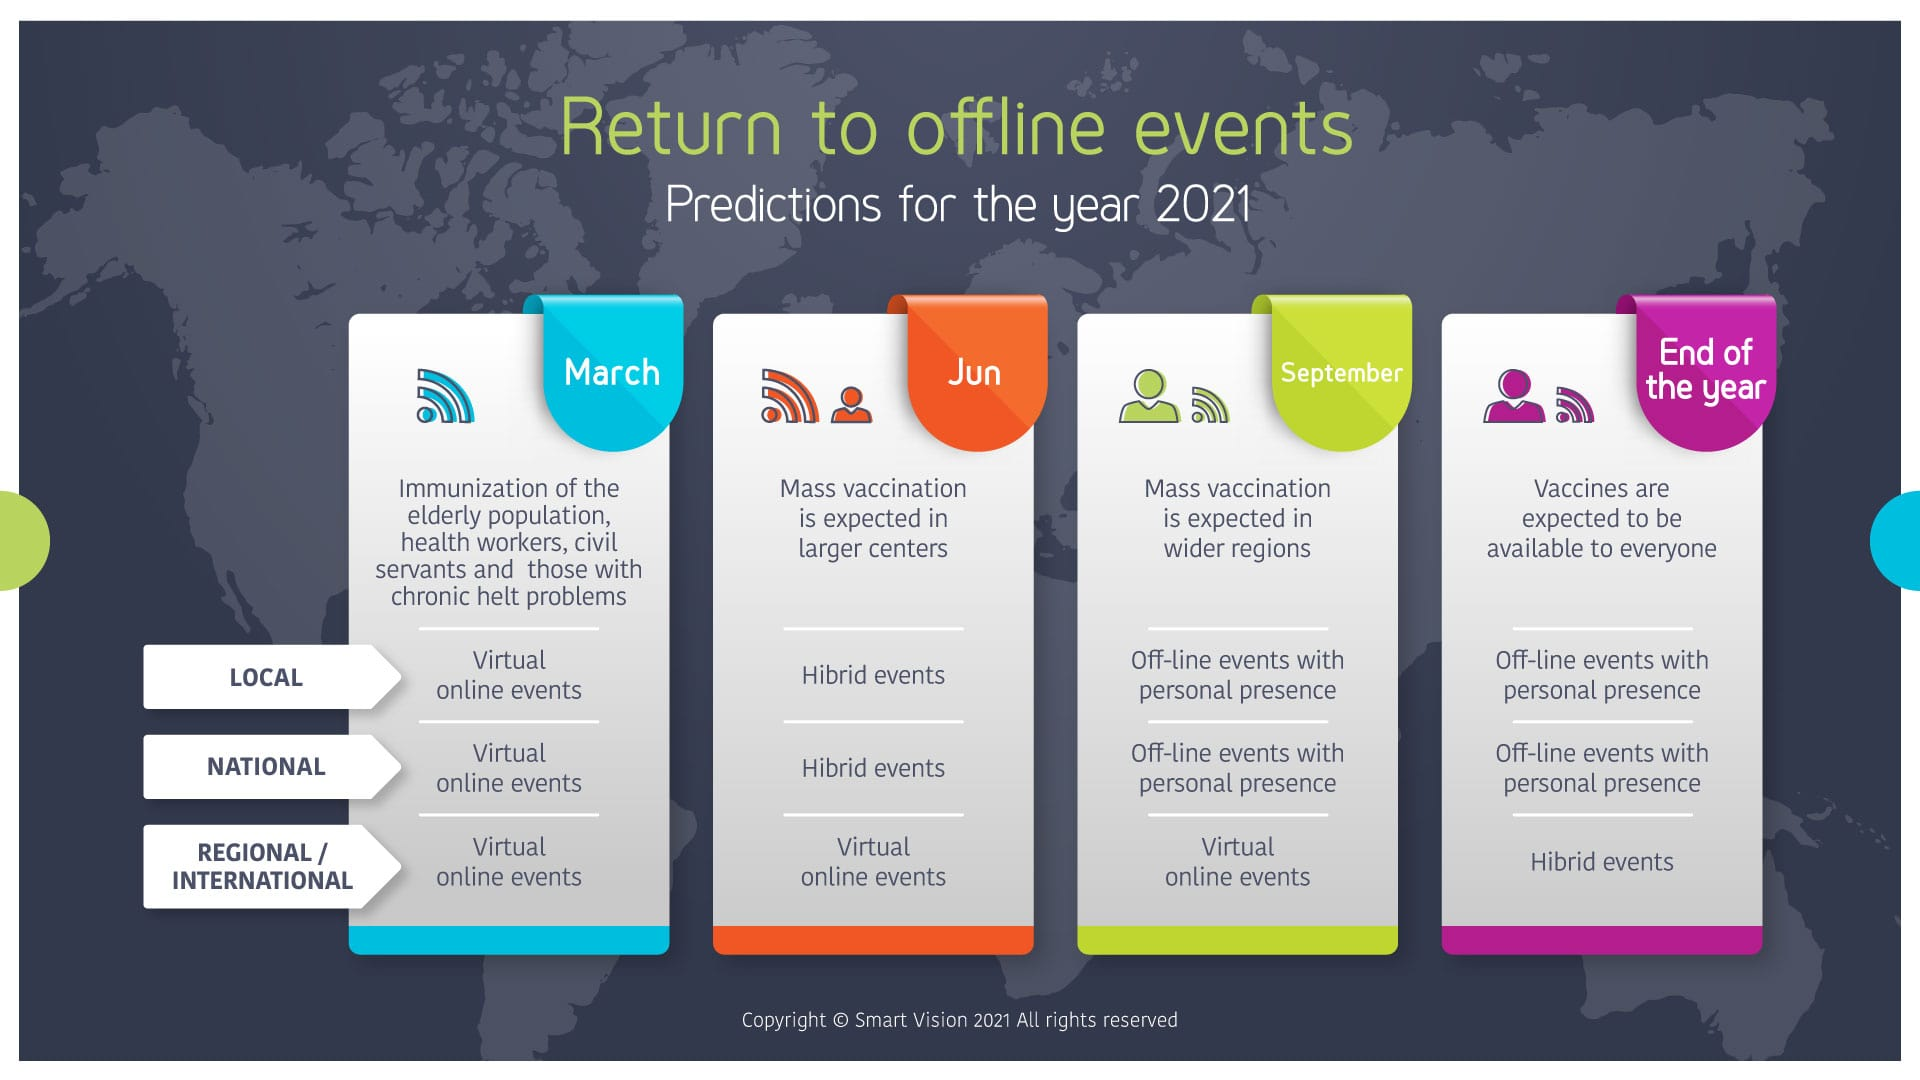 Smart Vison Blog - Going Back To The Good Old Events